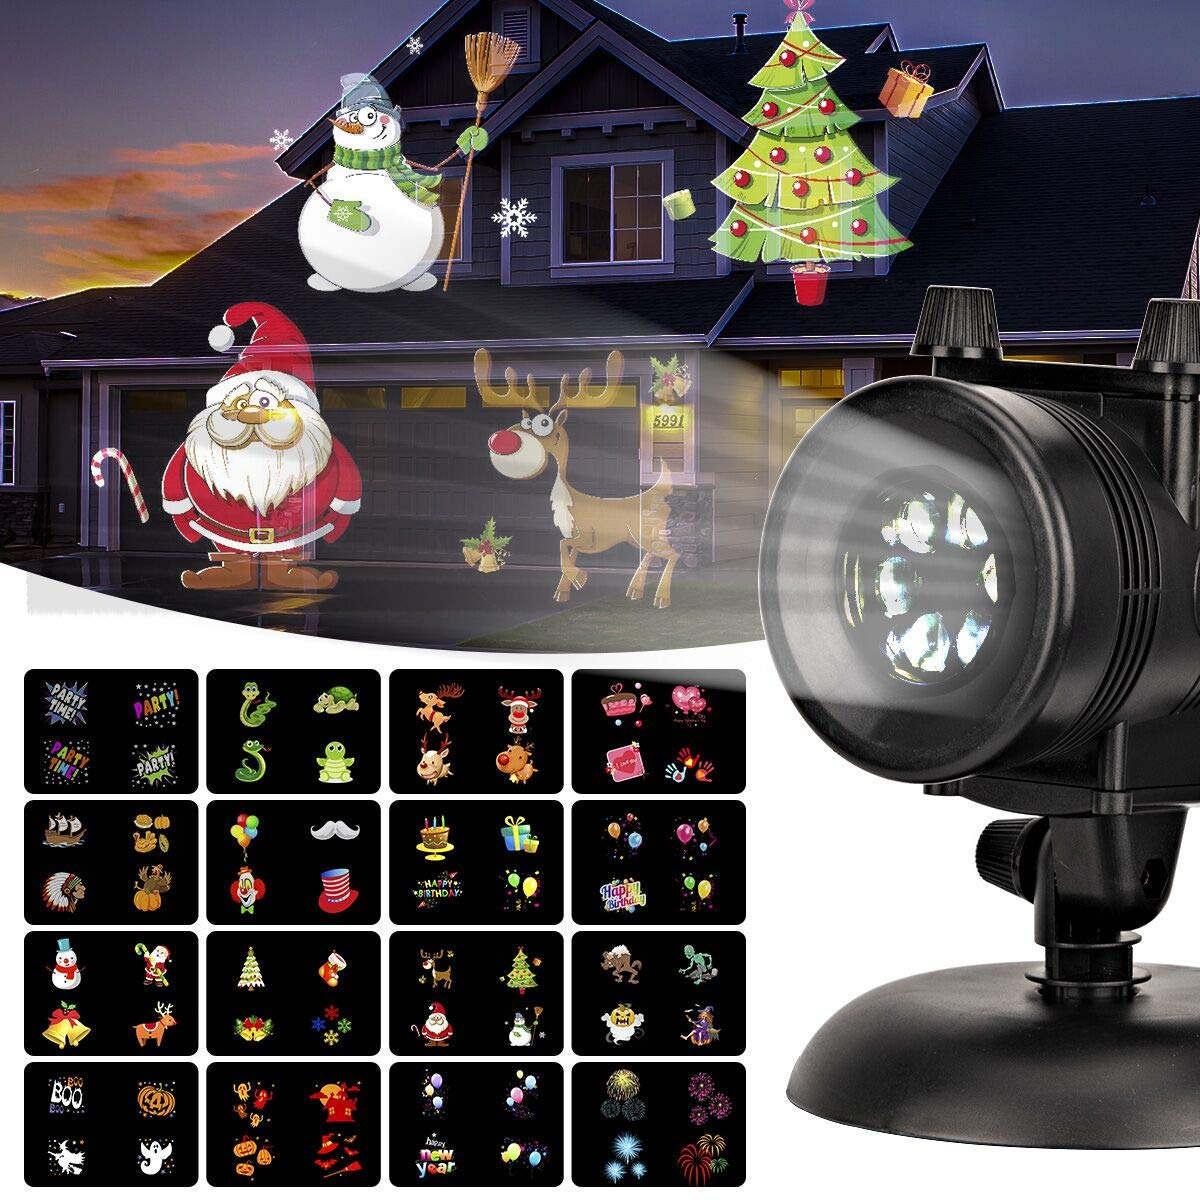 GIGALUMI Christmas Lights Projector, Waterproof Bright Led Landscape Lights for Halloween, Xmas, Indoor Outdoor Party, Yard Garden Decoration. (16 Slides)